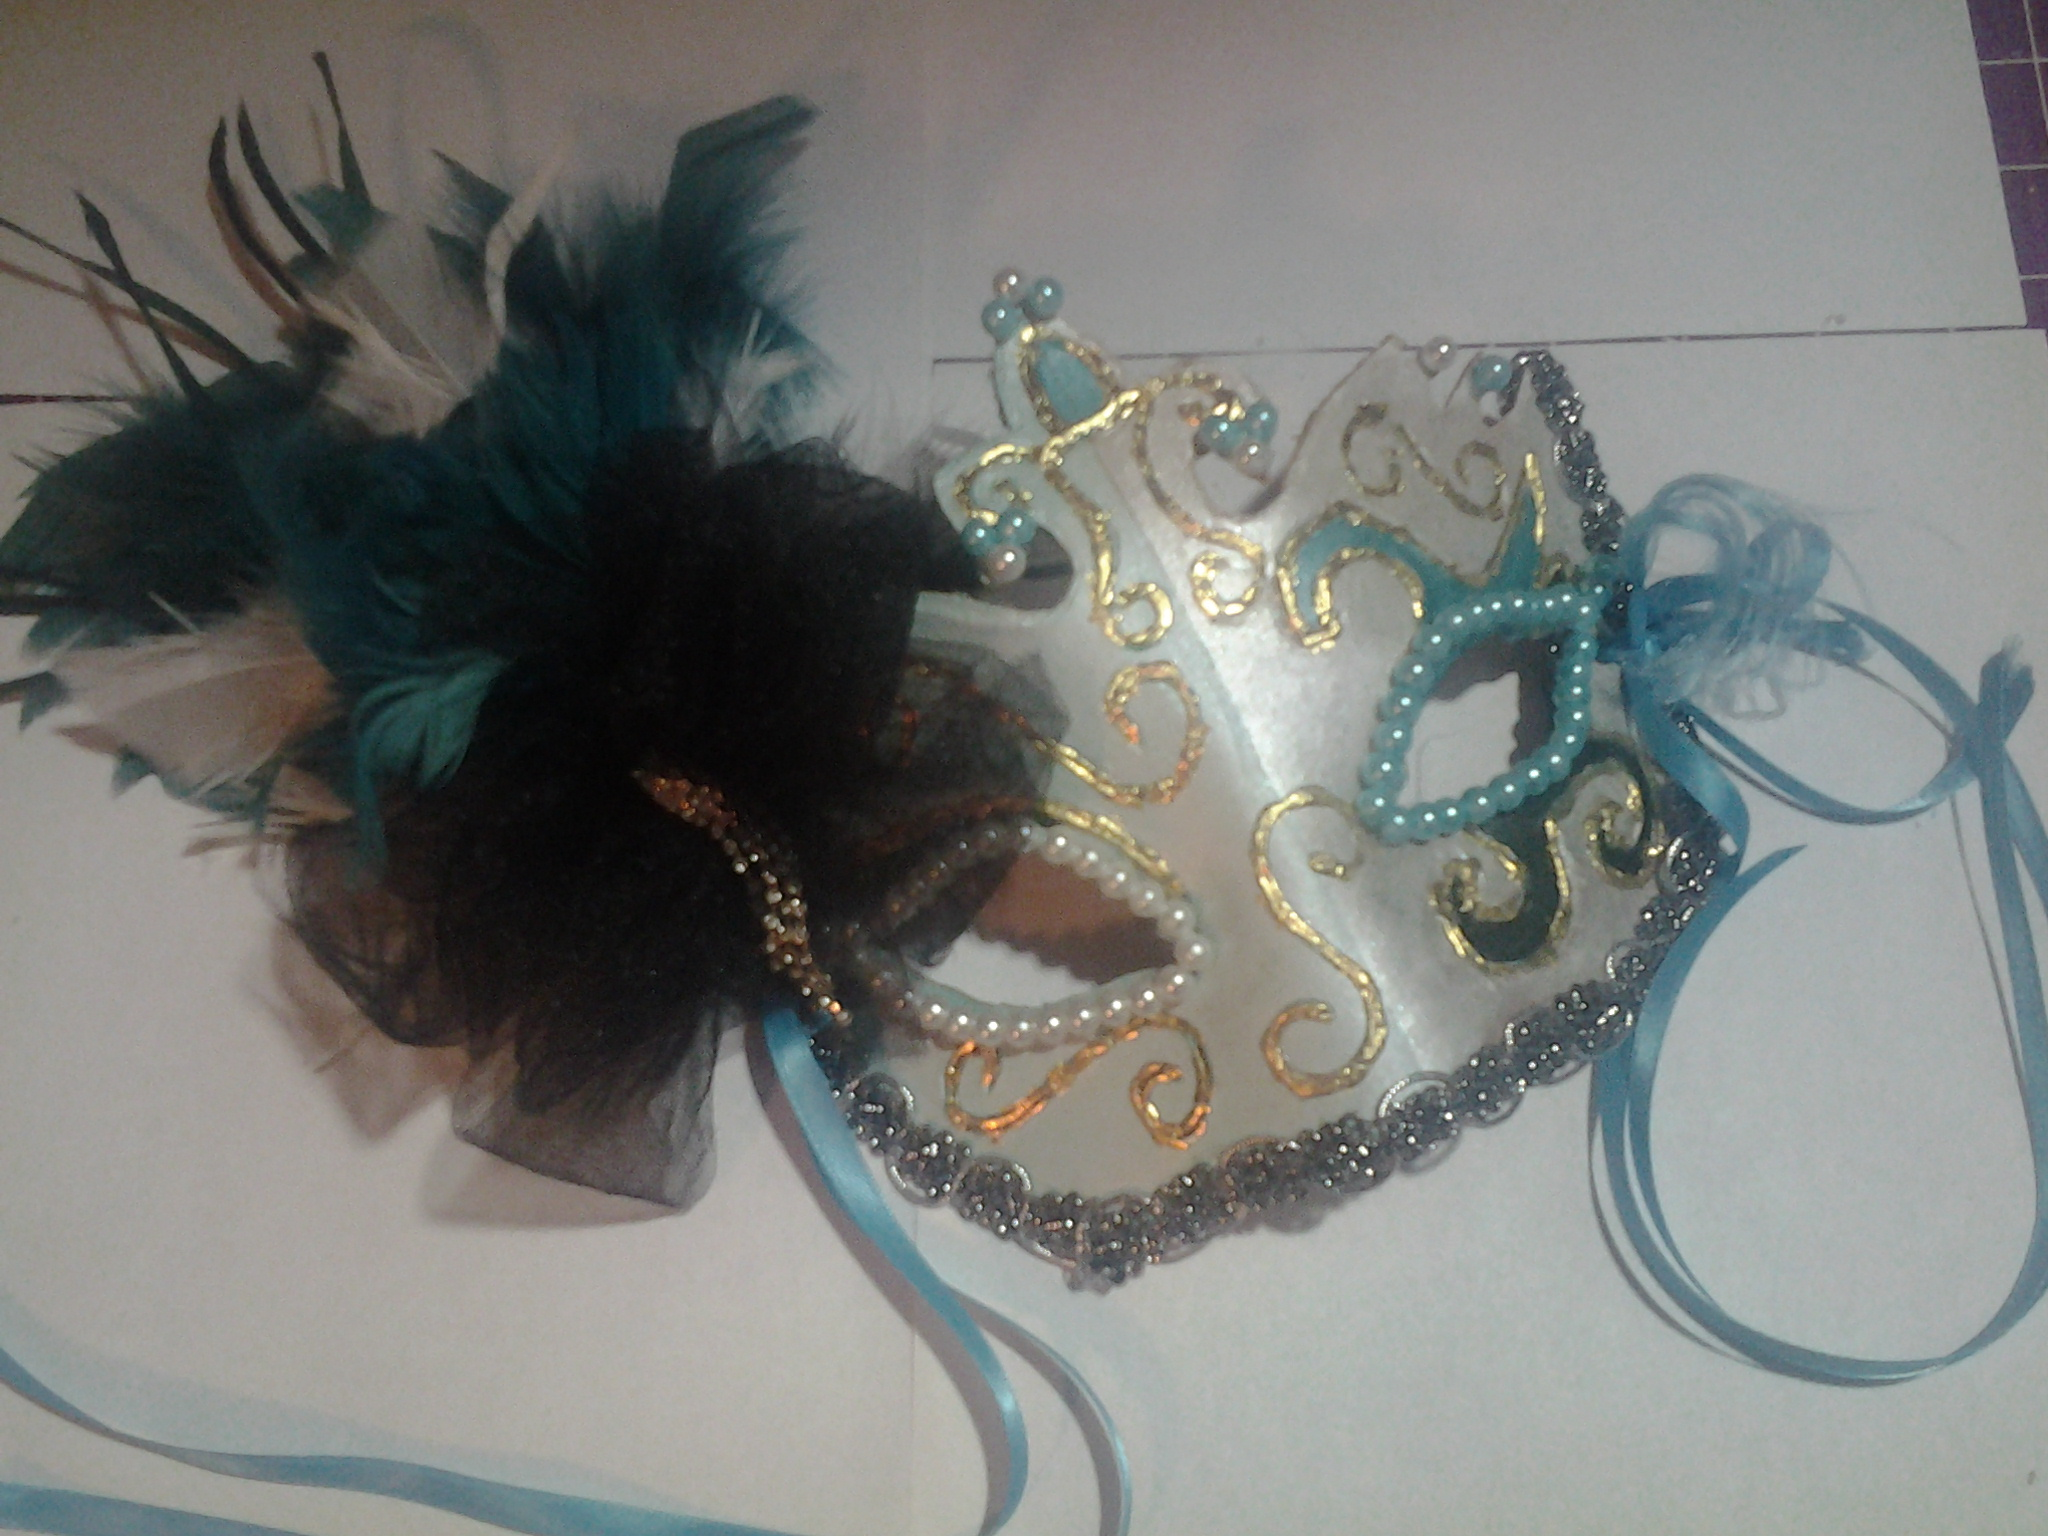 Picture of Finished Terrific in Teal Masquerade Mask!